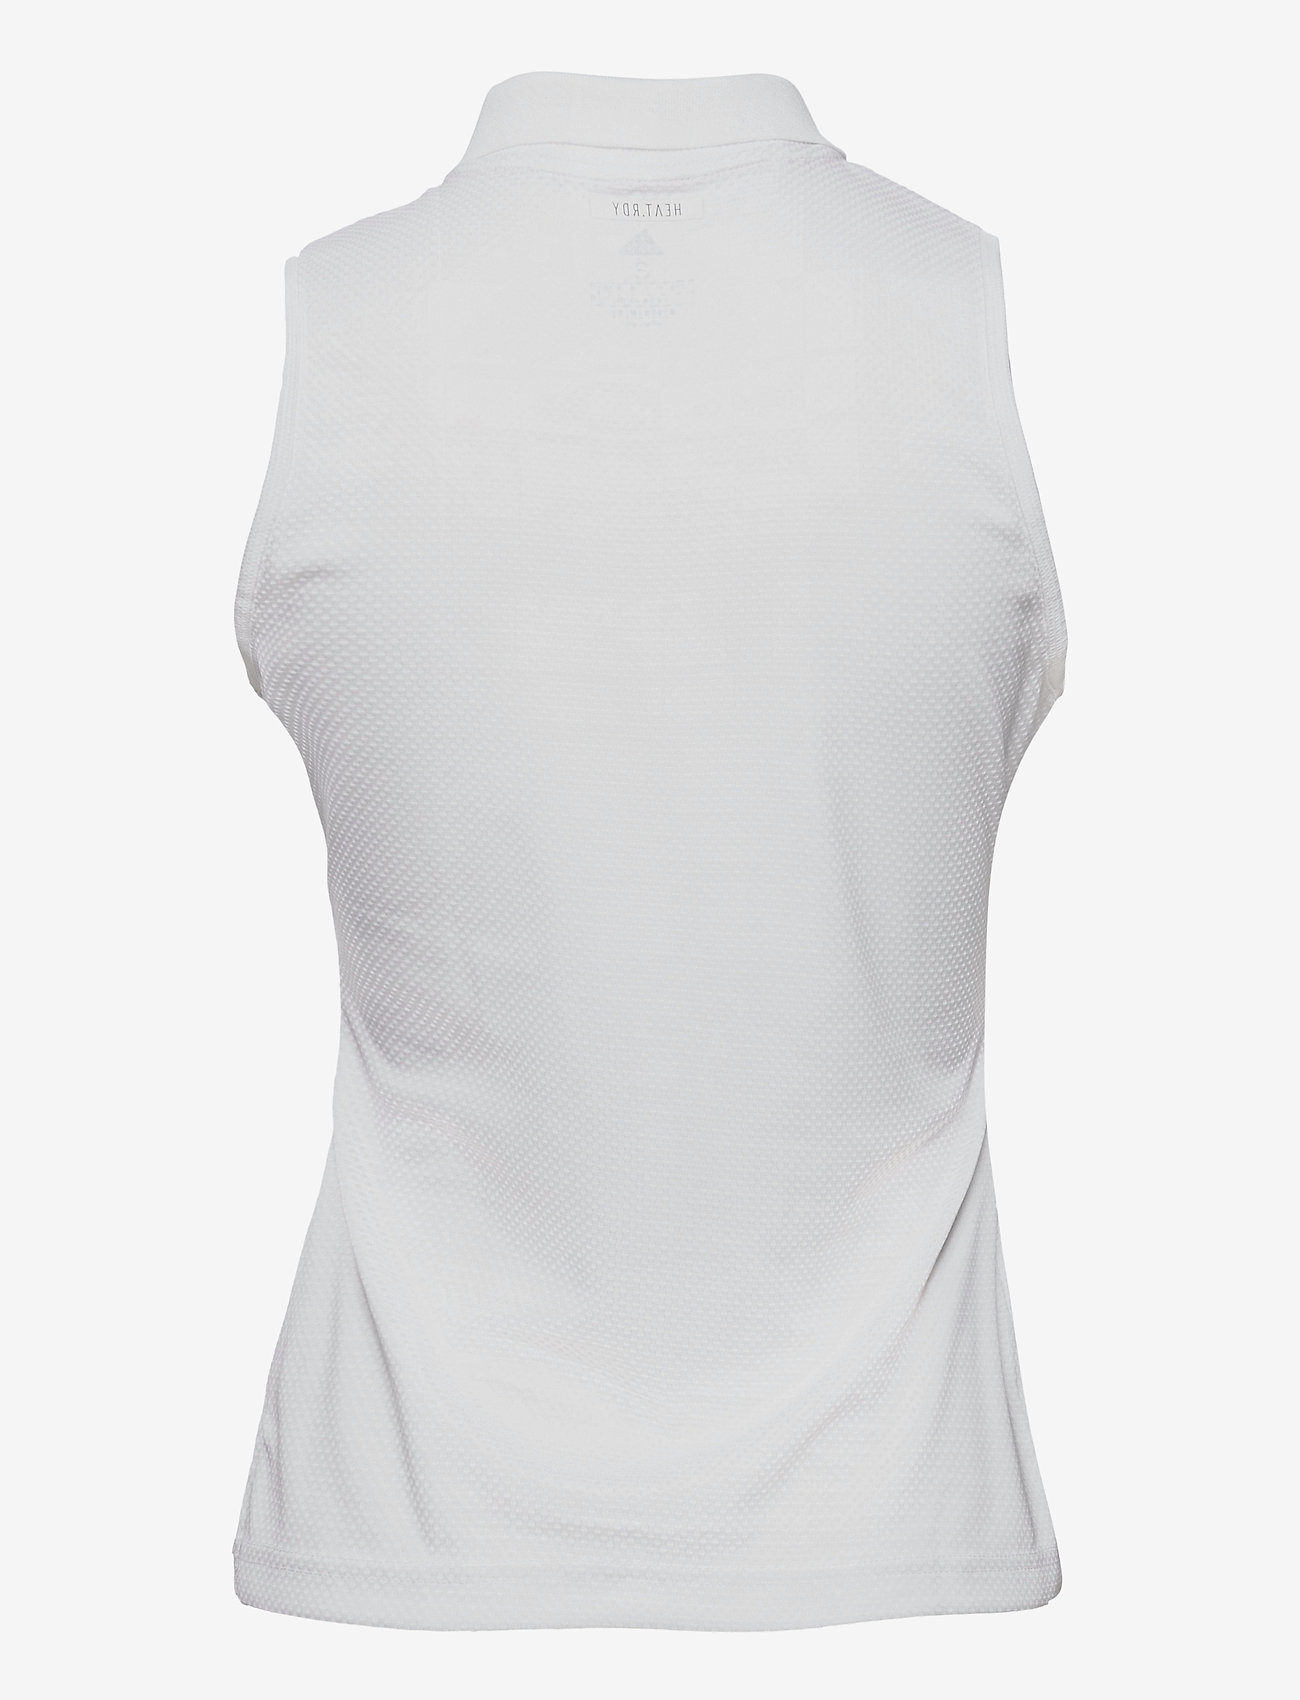 adidas Performance - TENNIS MATCH TANK HEAT.RDY - pikéer - white - 1